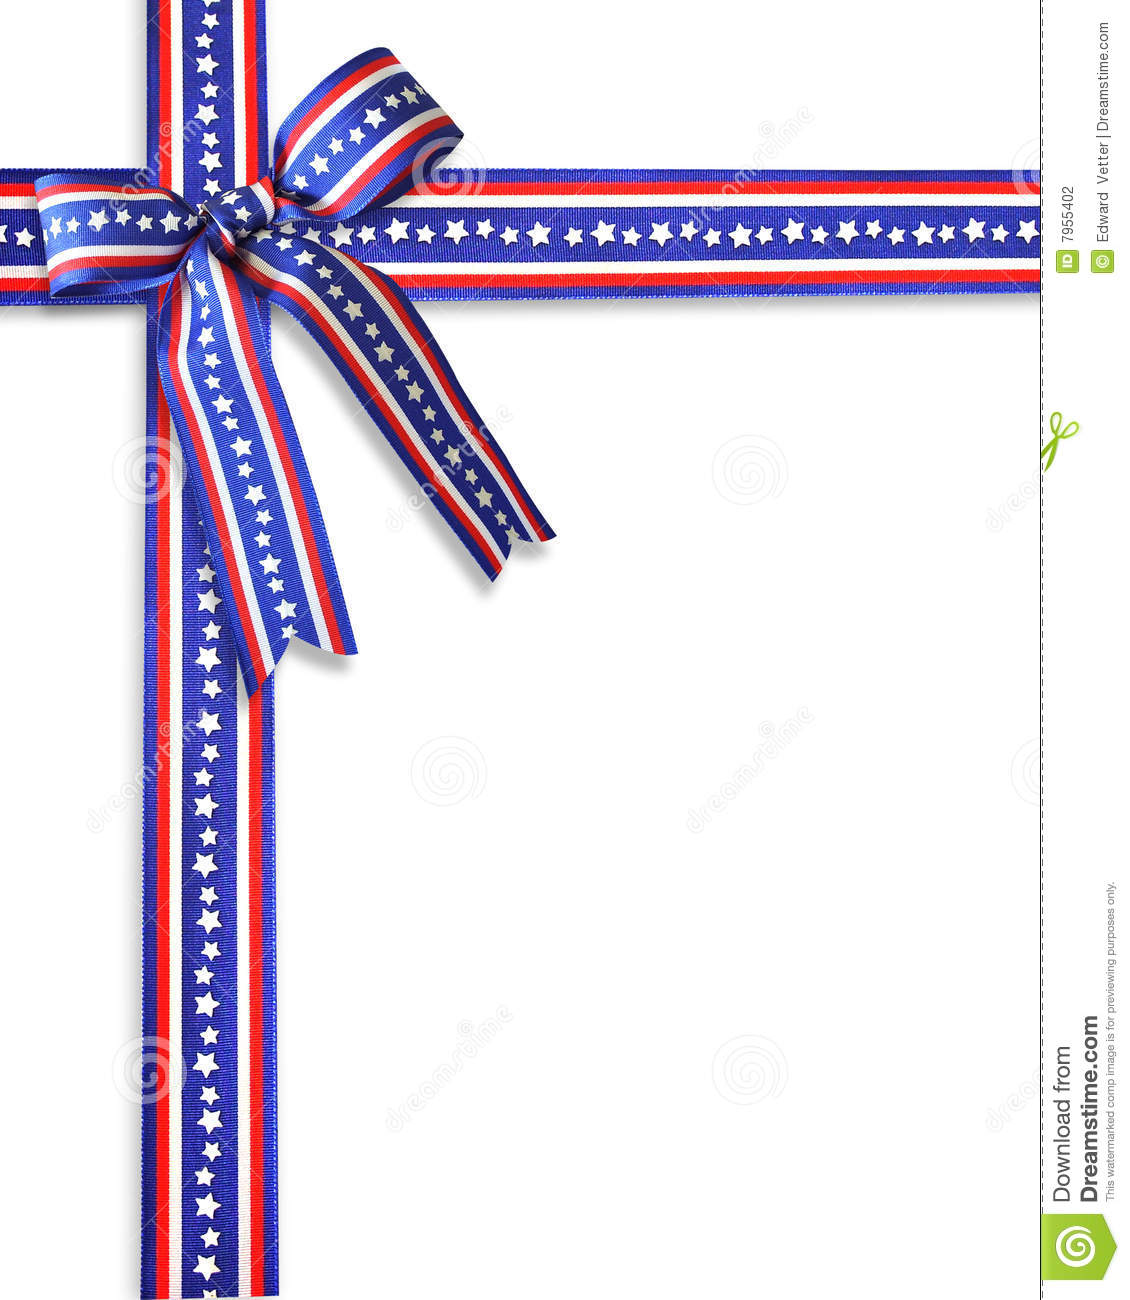 2019 year for girls- 4th of ribbon july pictures